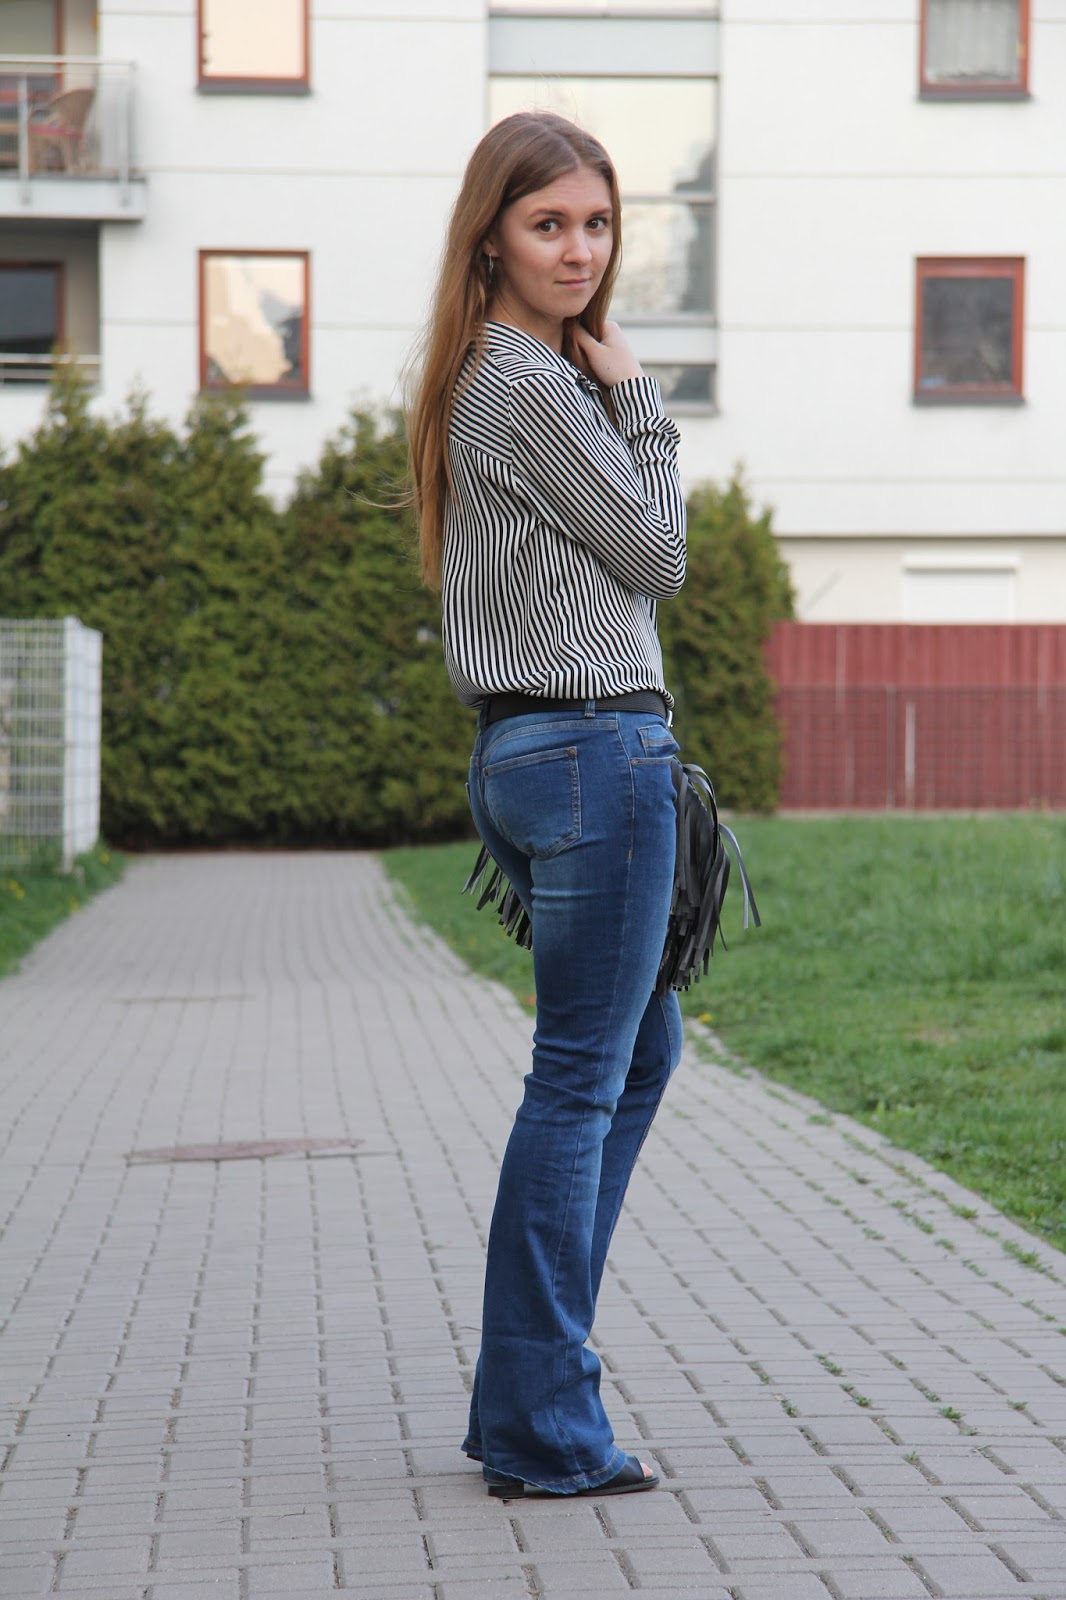 flared jeans and open-toe shoes